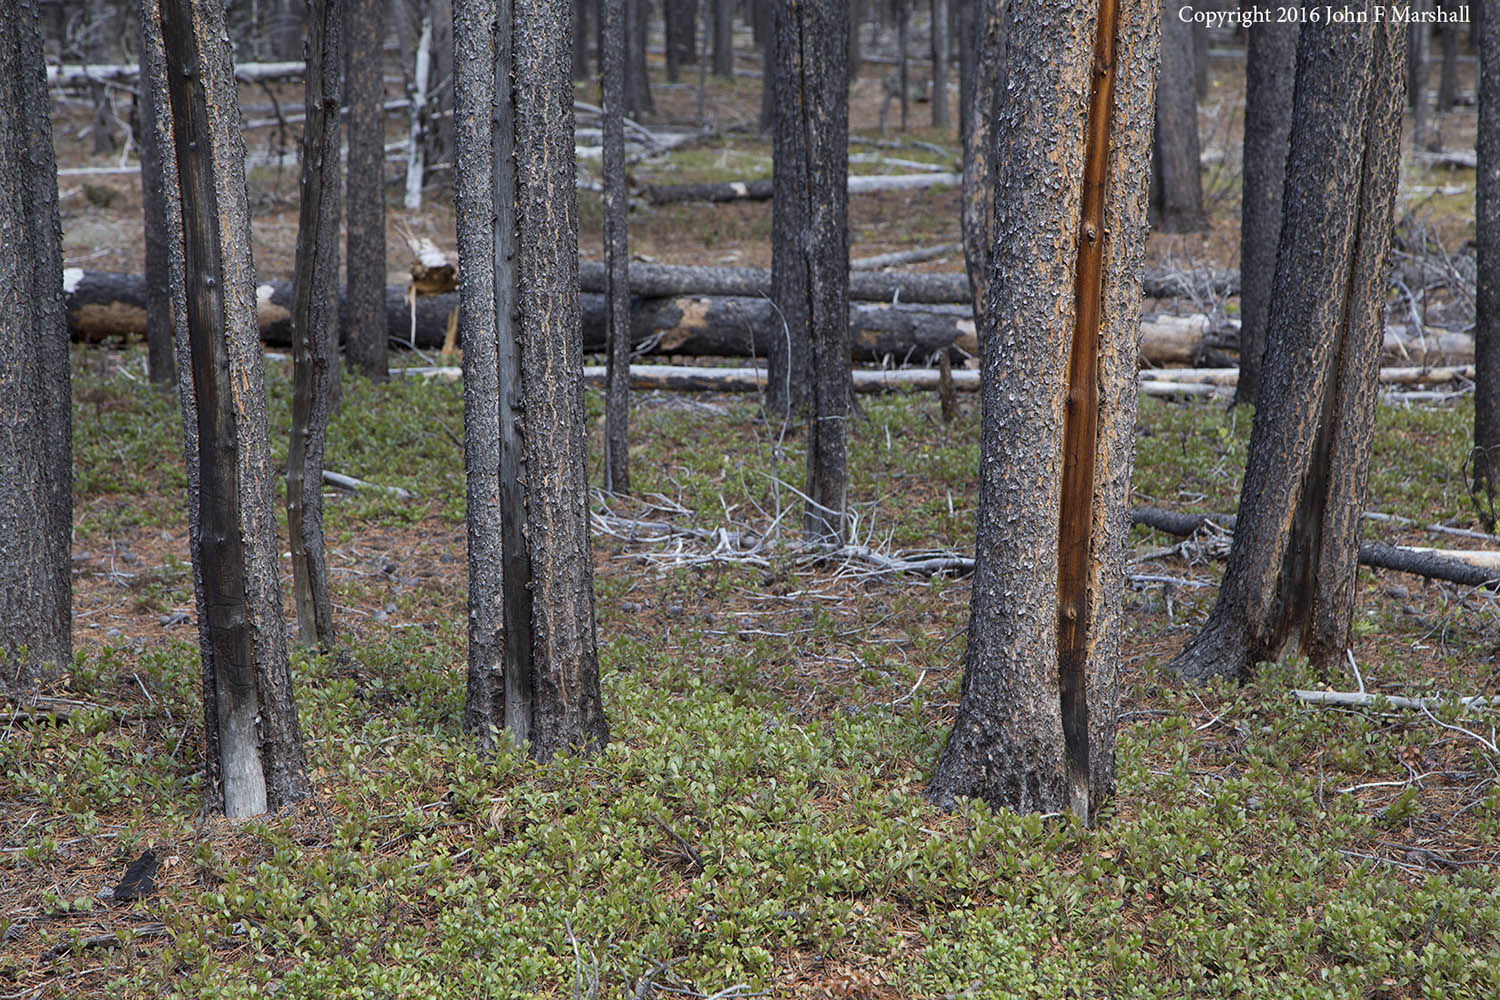 Although lodgepole pine has very thin bark and little protection against fire, it can survive low intensity fires as evidenced by scarring seen here.   The ground cover is kinikinik, a shrub that does not readily burn.  Middle Fork of Toat's Coulee, Pasayten Wilderness, Okanogan-Wenatchee National Forest, WA.